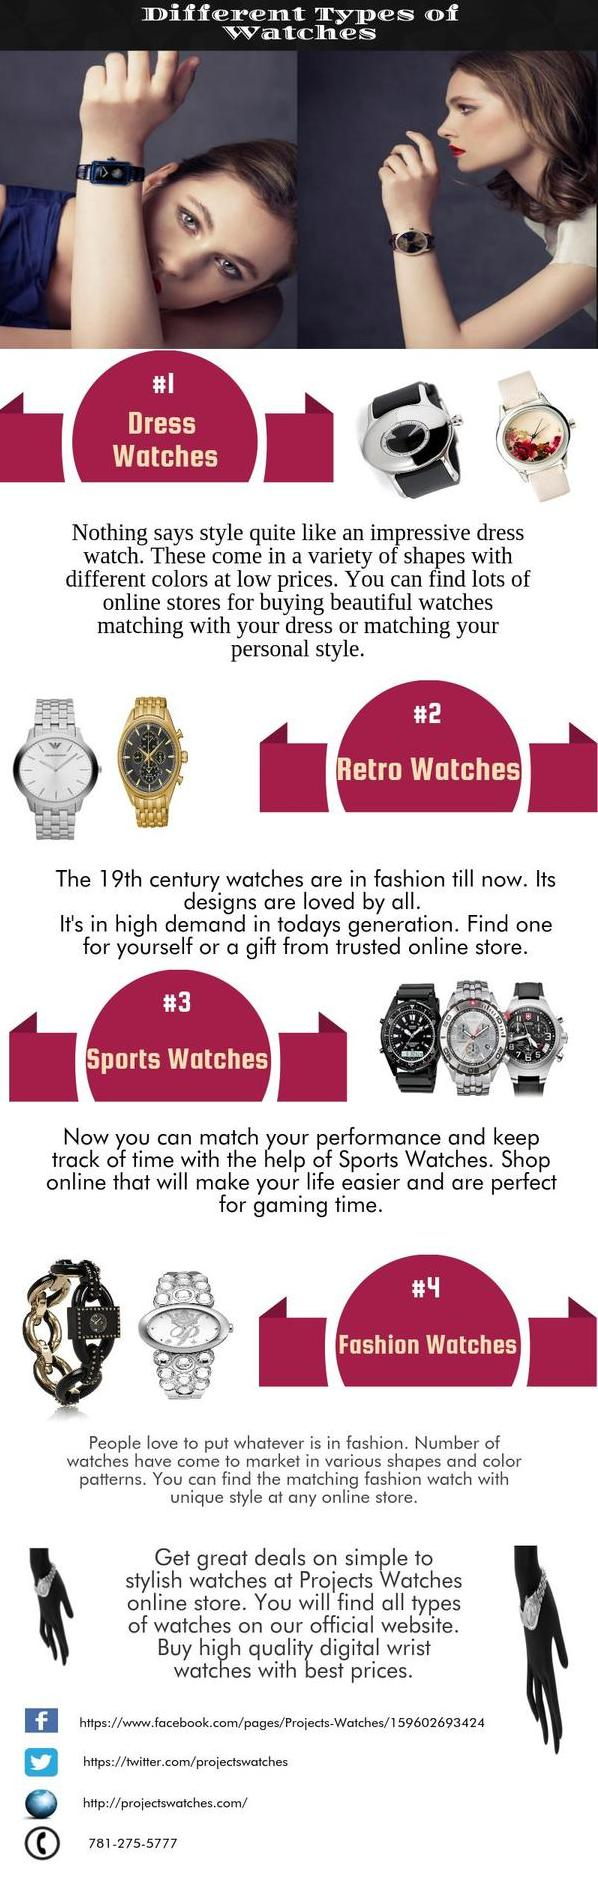 Buy digital wrist watch at best prices. Our online store is one of the popular leading store. You will find huge collection of watches here with different designs.